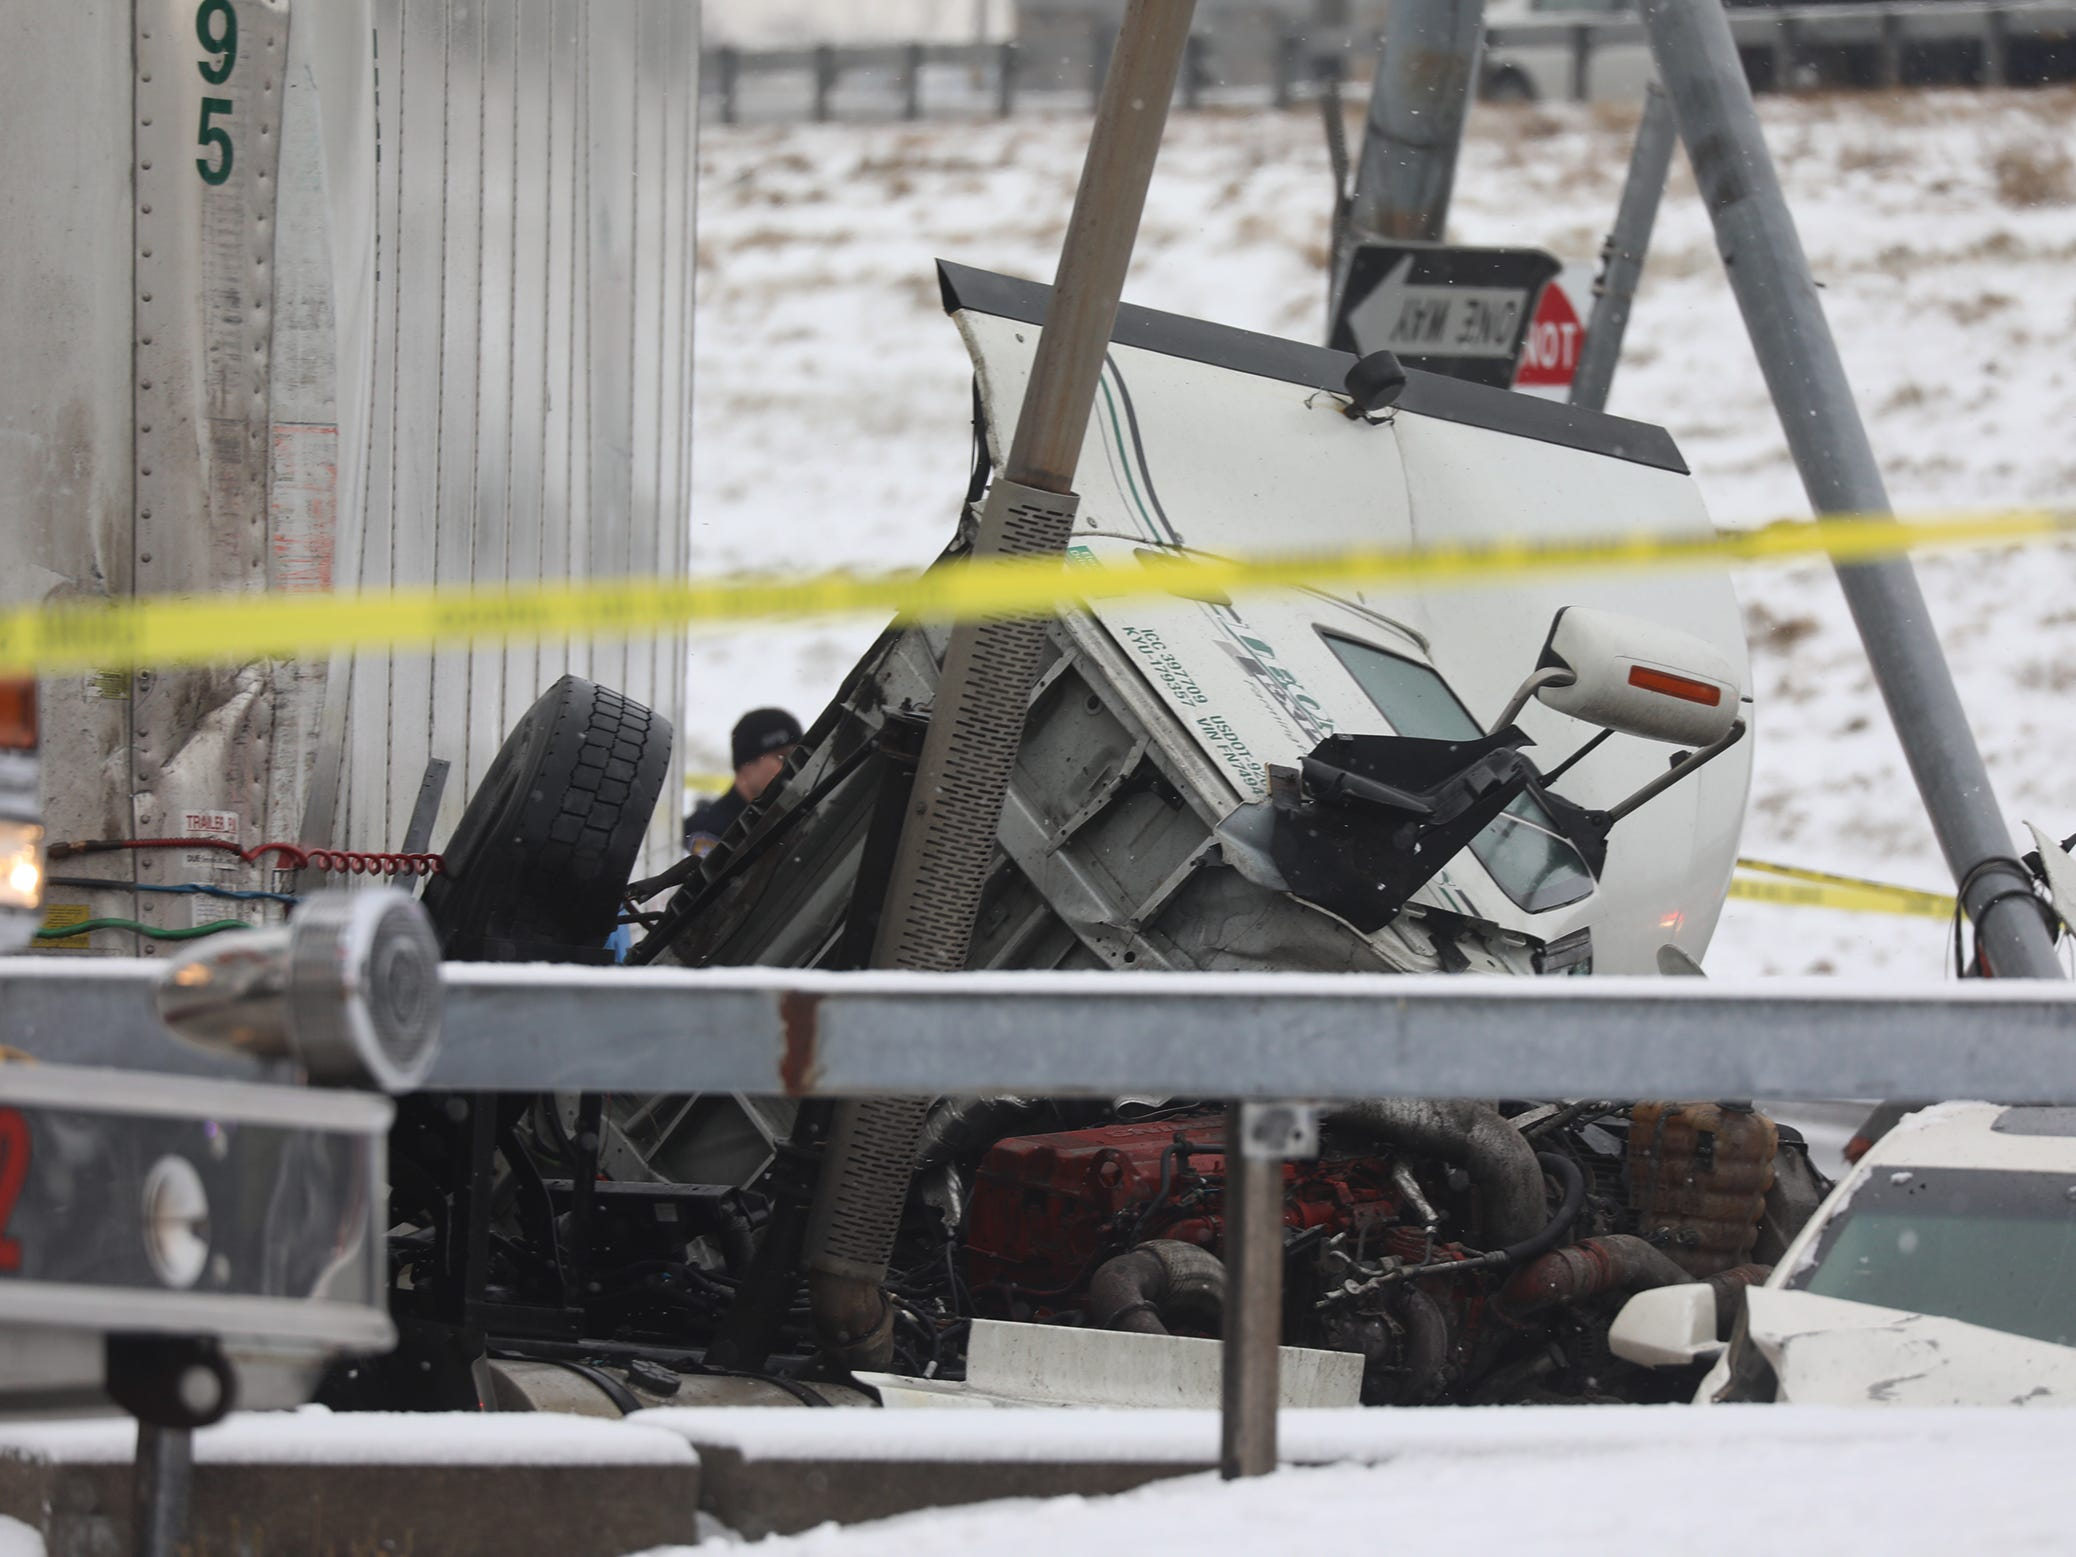 The cab of the truck came off and lies next to the body of the truck.